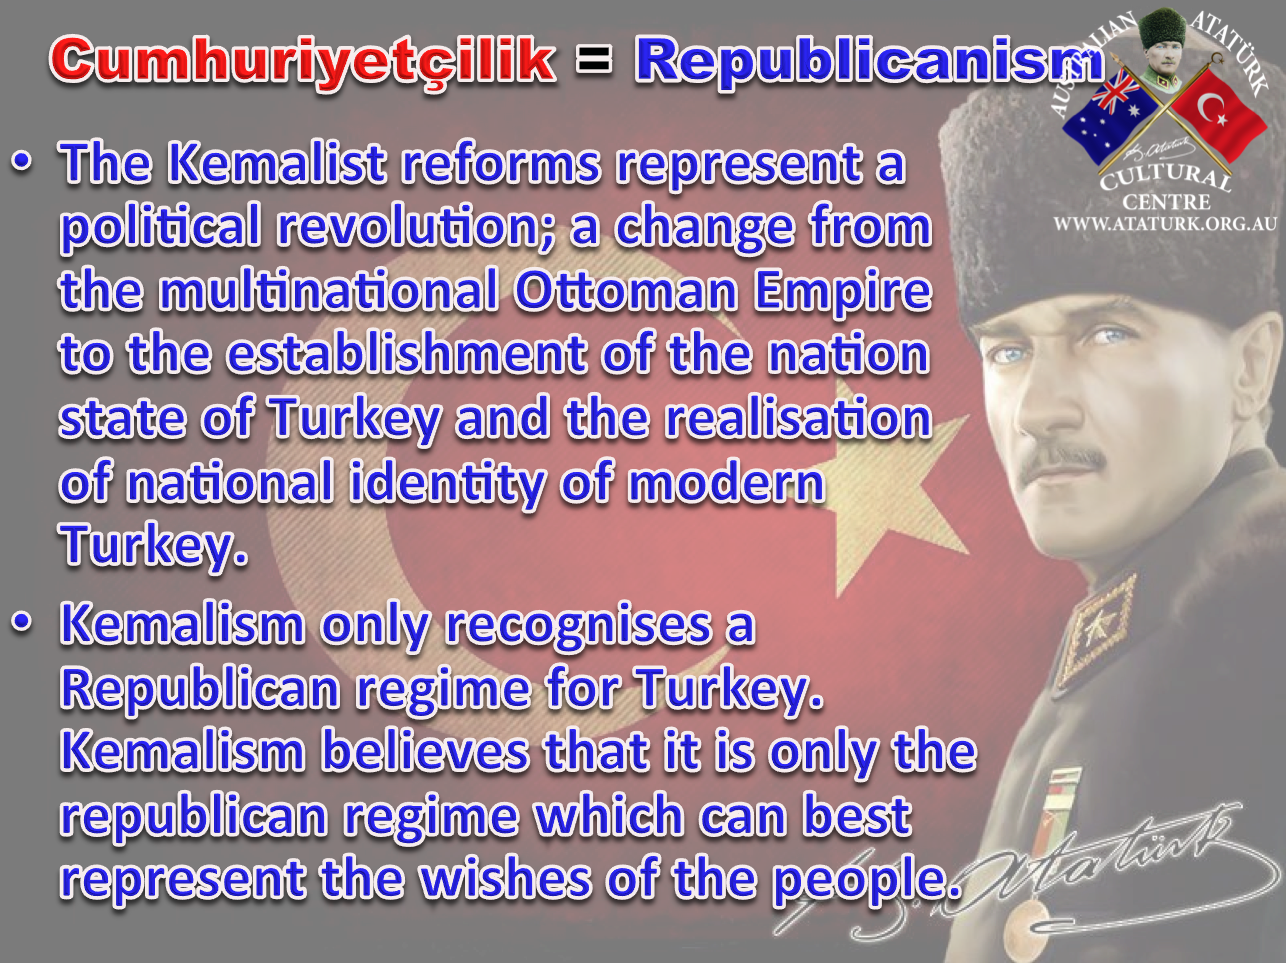 AAKM - Ataturk Principles and Reforms - 3 Republicanism